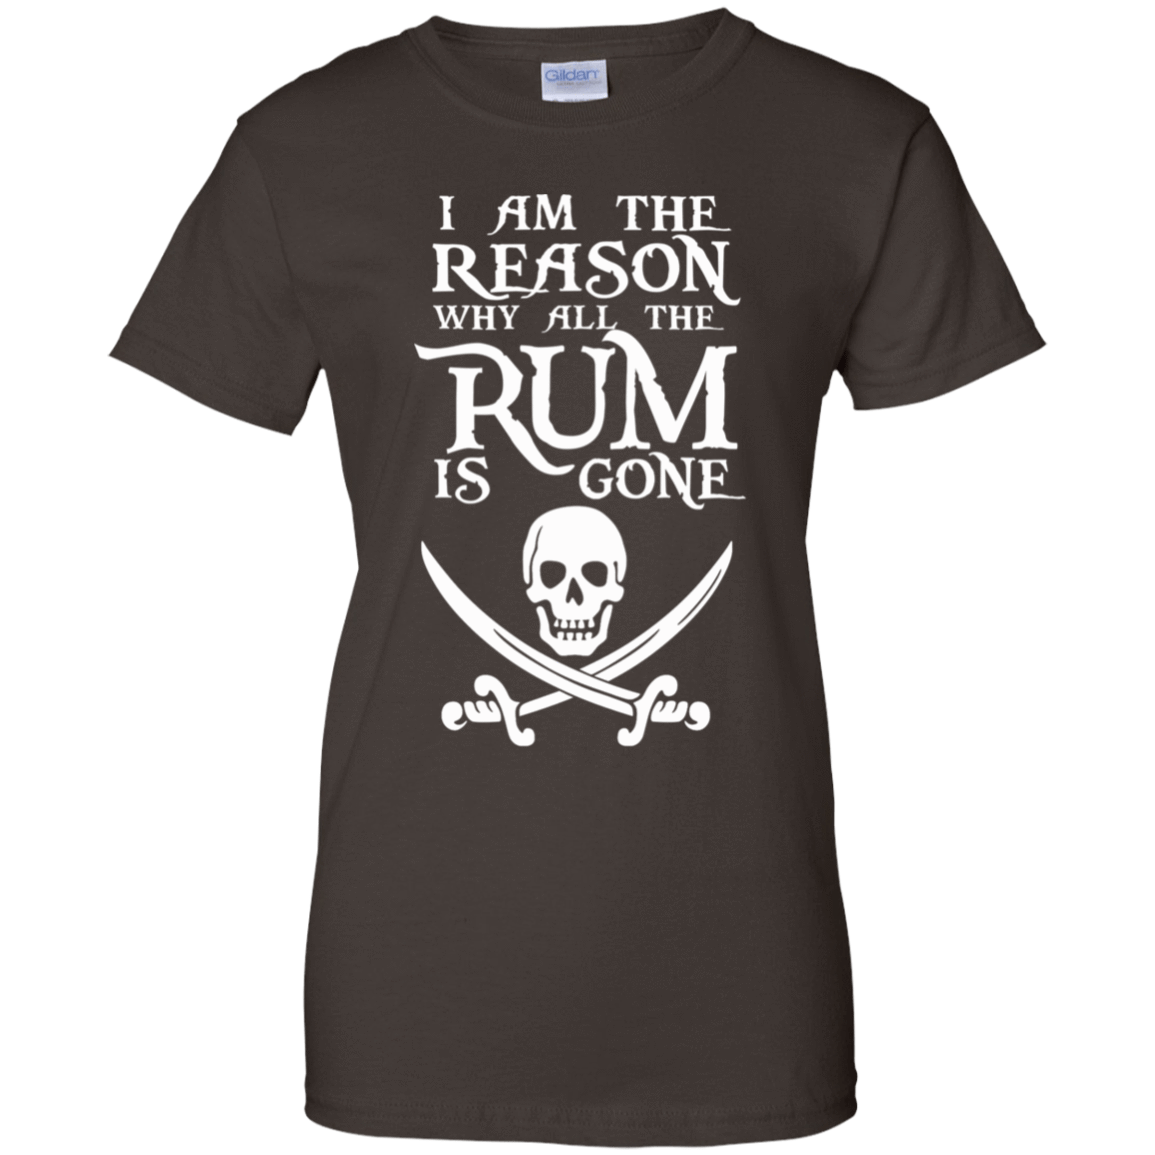 I Am The Reason Why All The Rum Is Gone 939-9251-73425466-44702 - Tee Ript